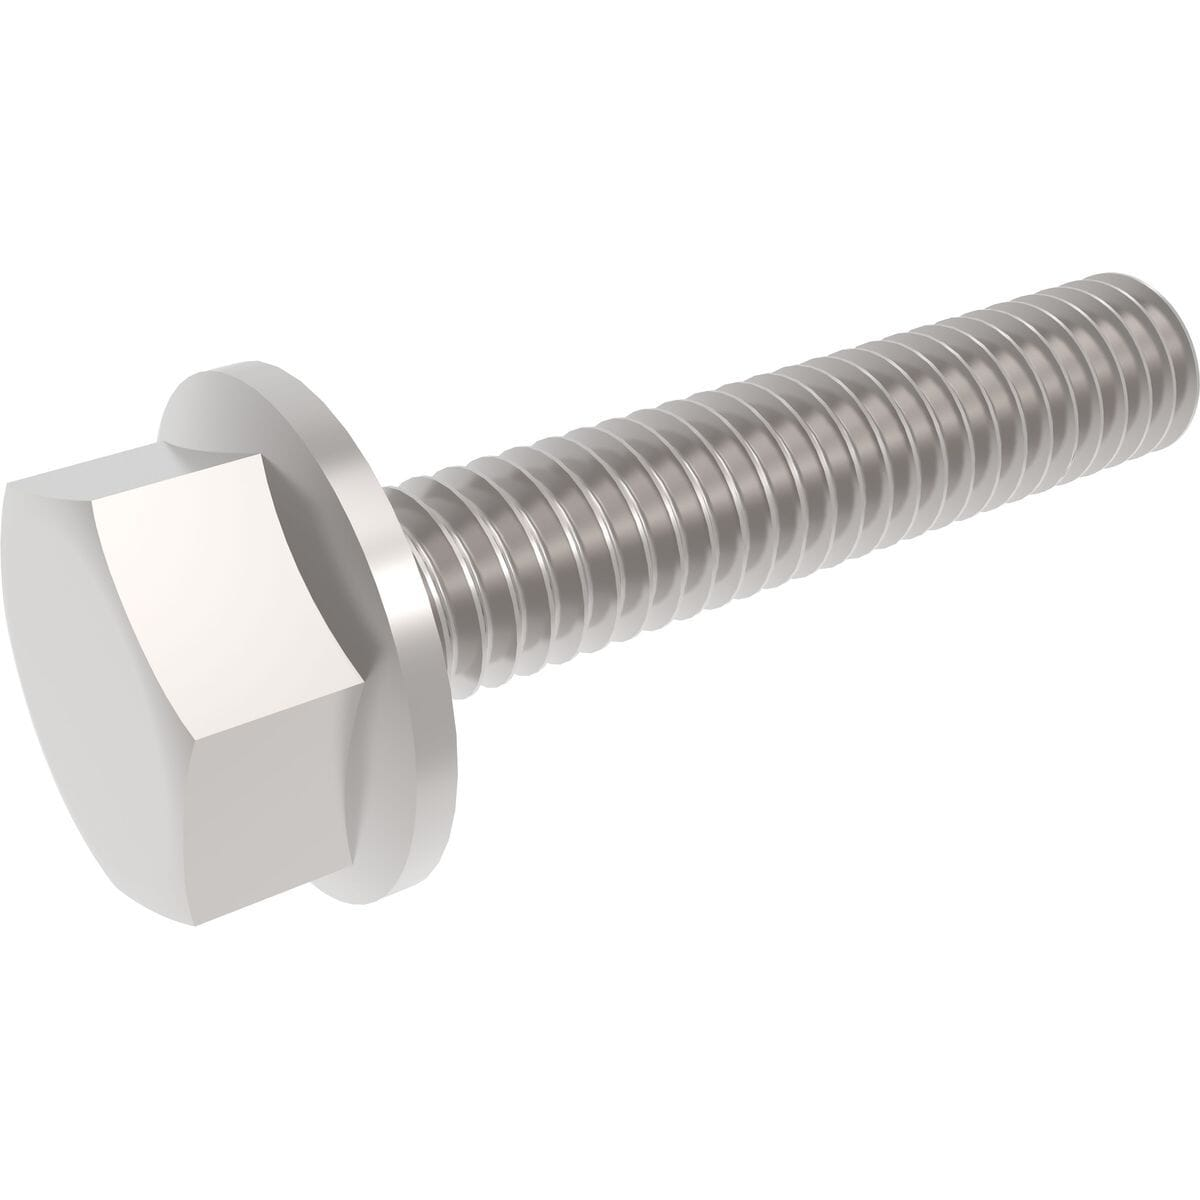 M6 x 25mm Flanged Hexagon Bolts (DIN 6921) - Marine Stainless Steel (A4)